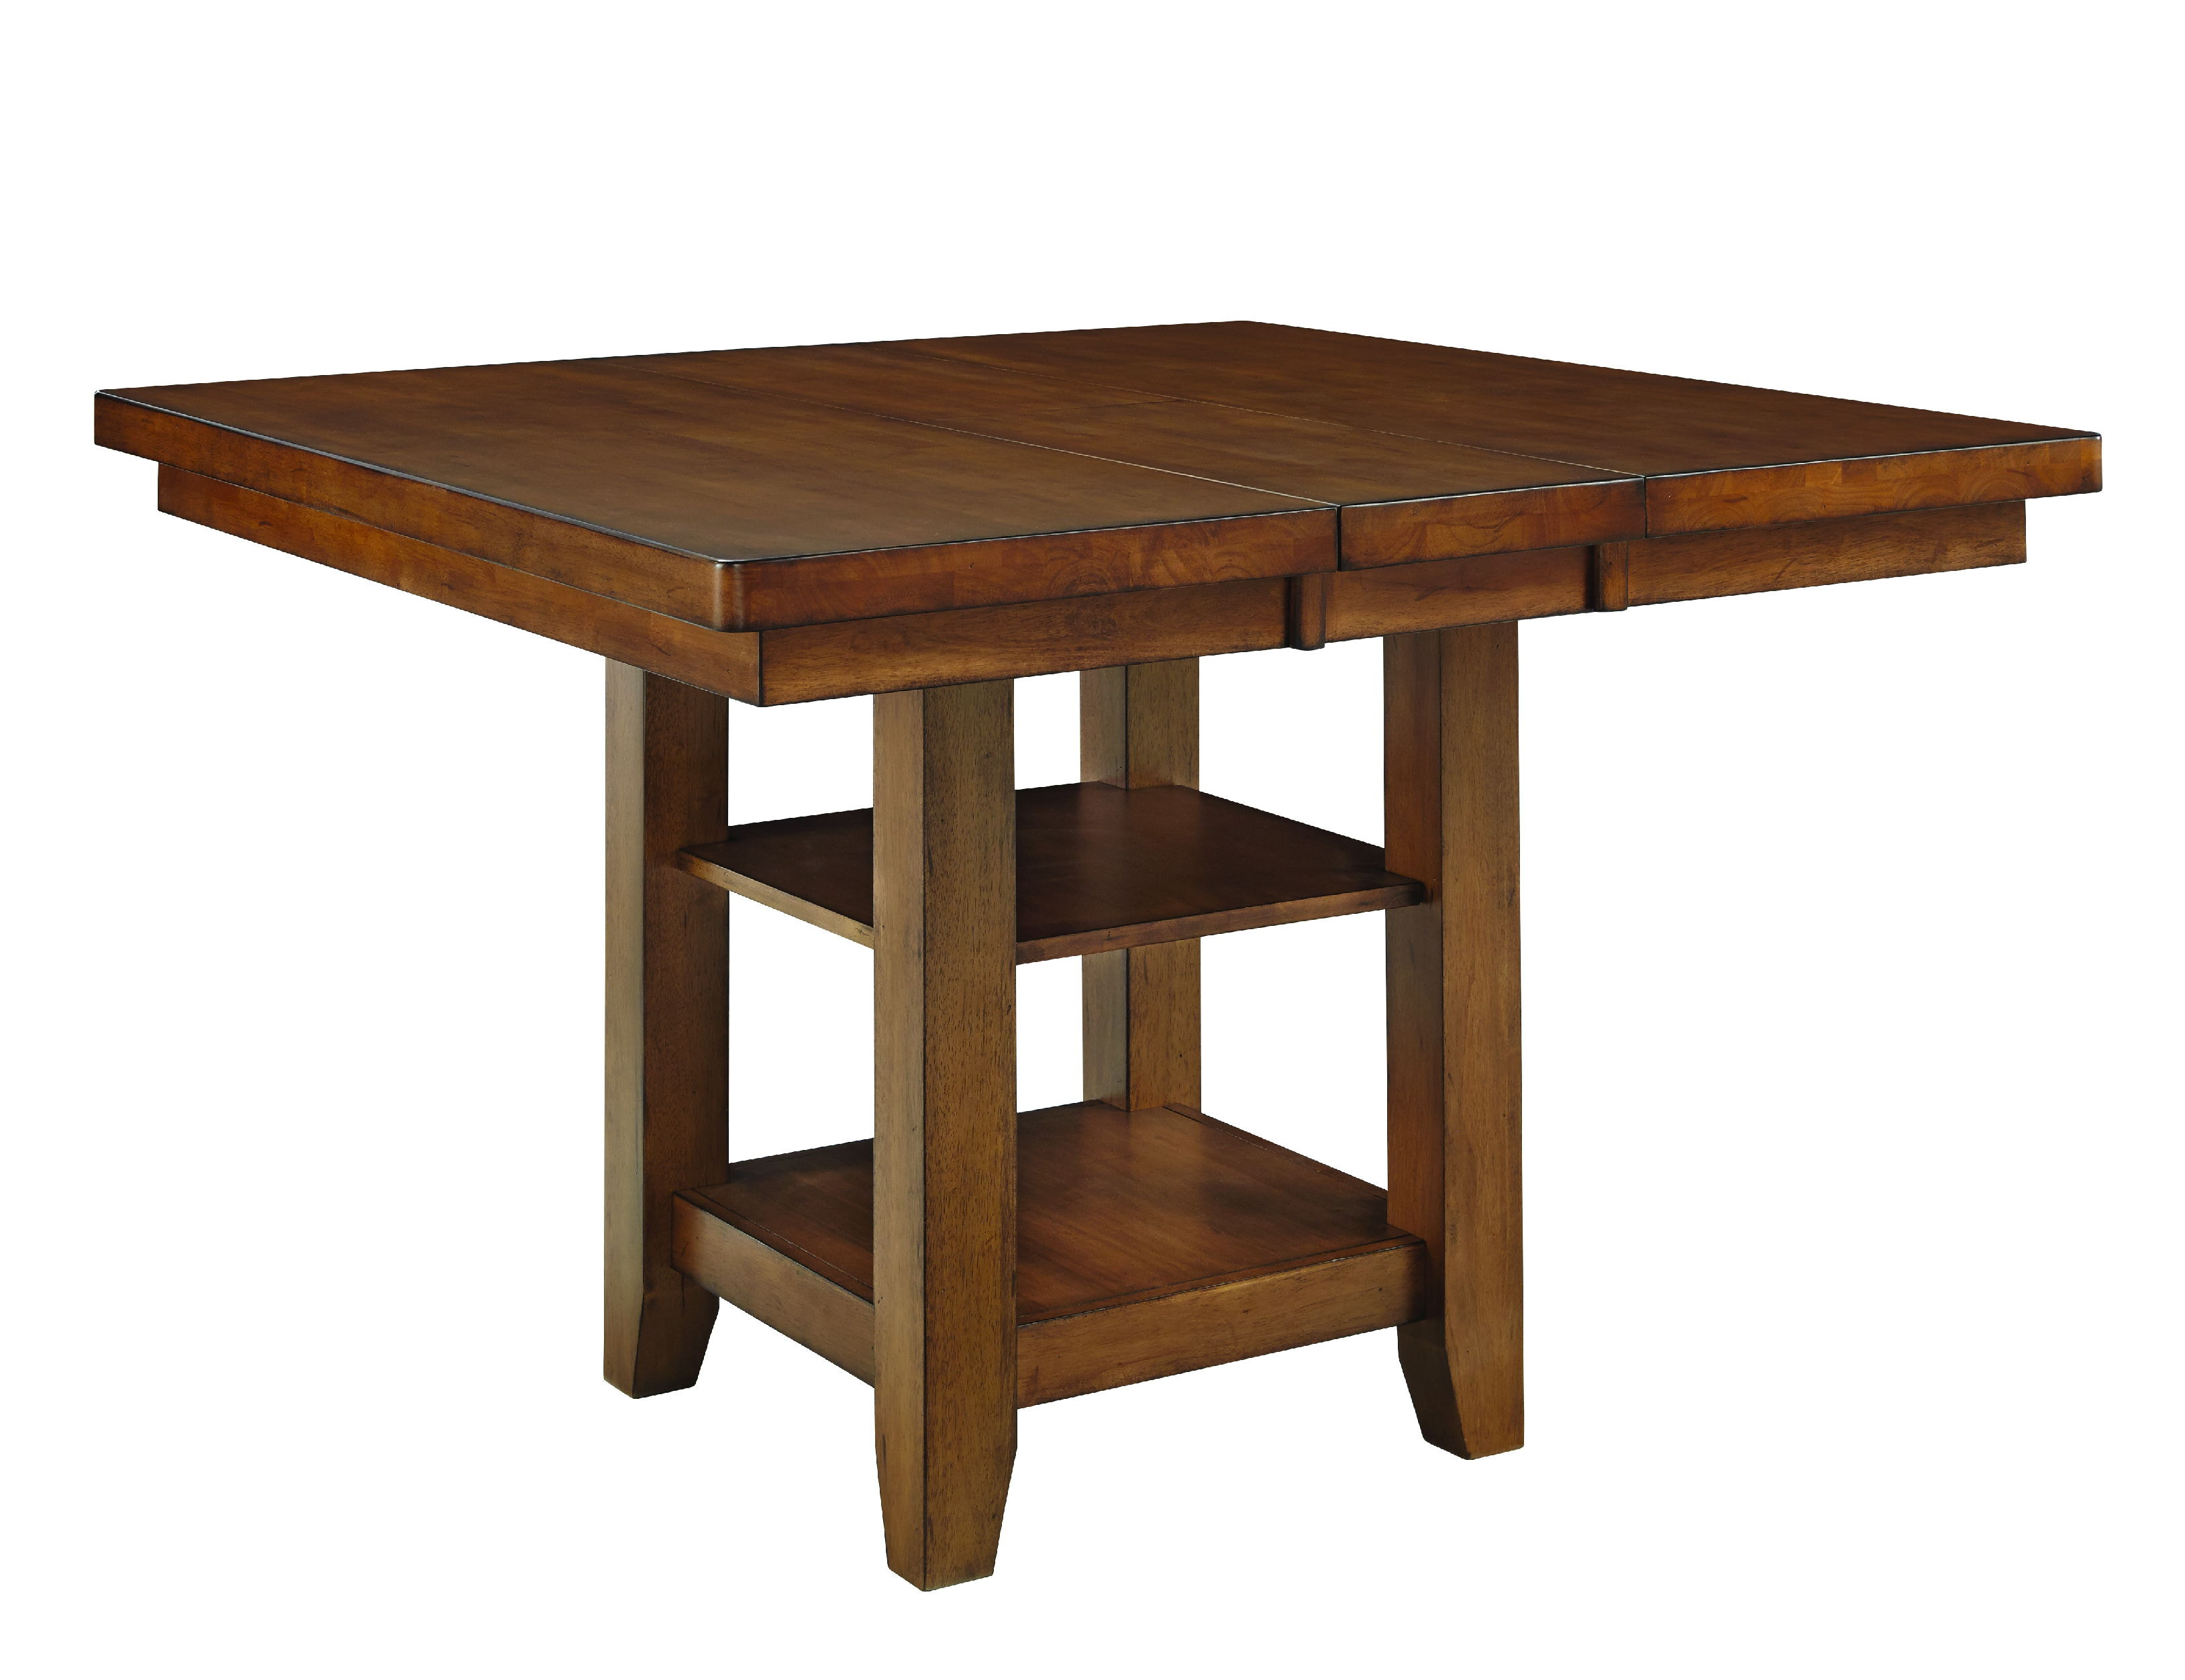 John Thomas Bar And Game Room Canyon High Top Table In Pecan T59 5436XBT /  T59 5436GB   Matter Brothers Furniture   Fort Myers, Sarasota, Tarpon  Springs, ...